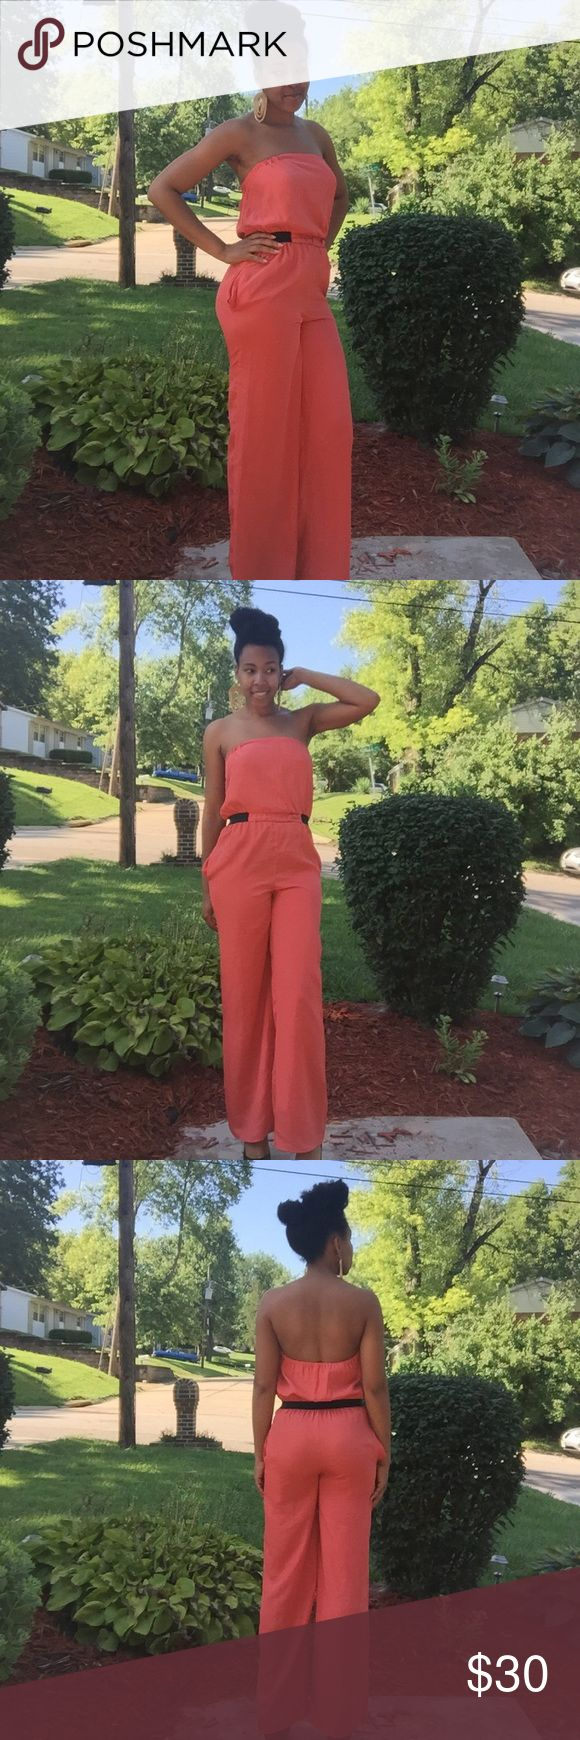 Coral Orange Jumper This coral/orange colored jumpsuit is so breezy and perfect for summer weather. Built in elastic band helps to cinch the waist for a more flattering fit. Pair it with flats during the day or jazz it up with heels at night! Xhilaration Pants Jumpsuits & Rompers